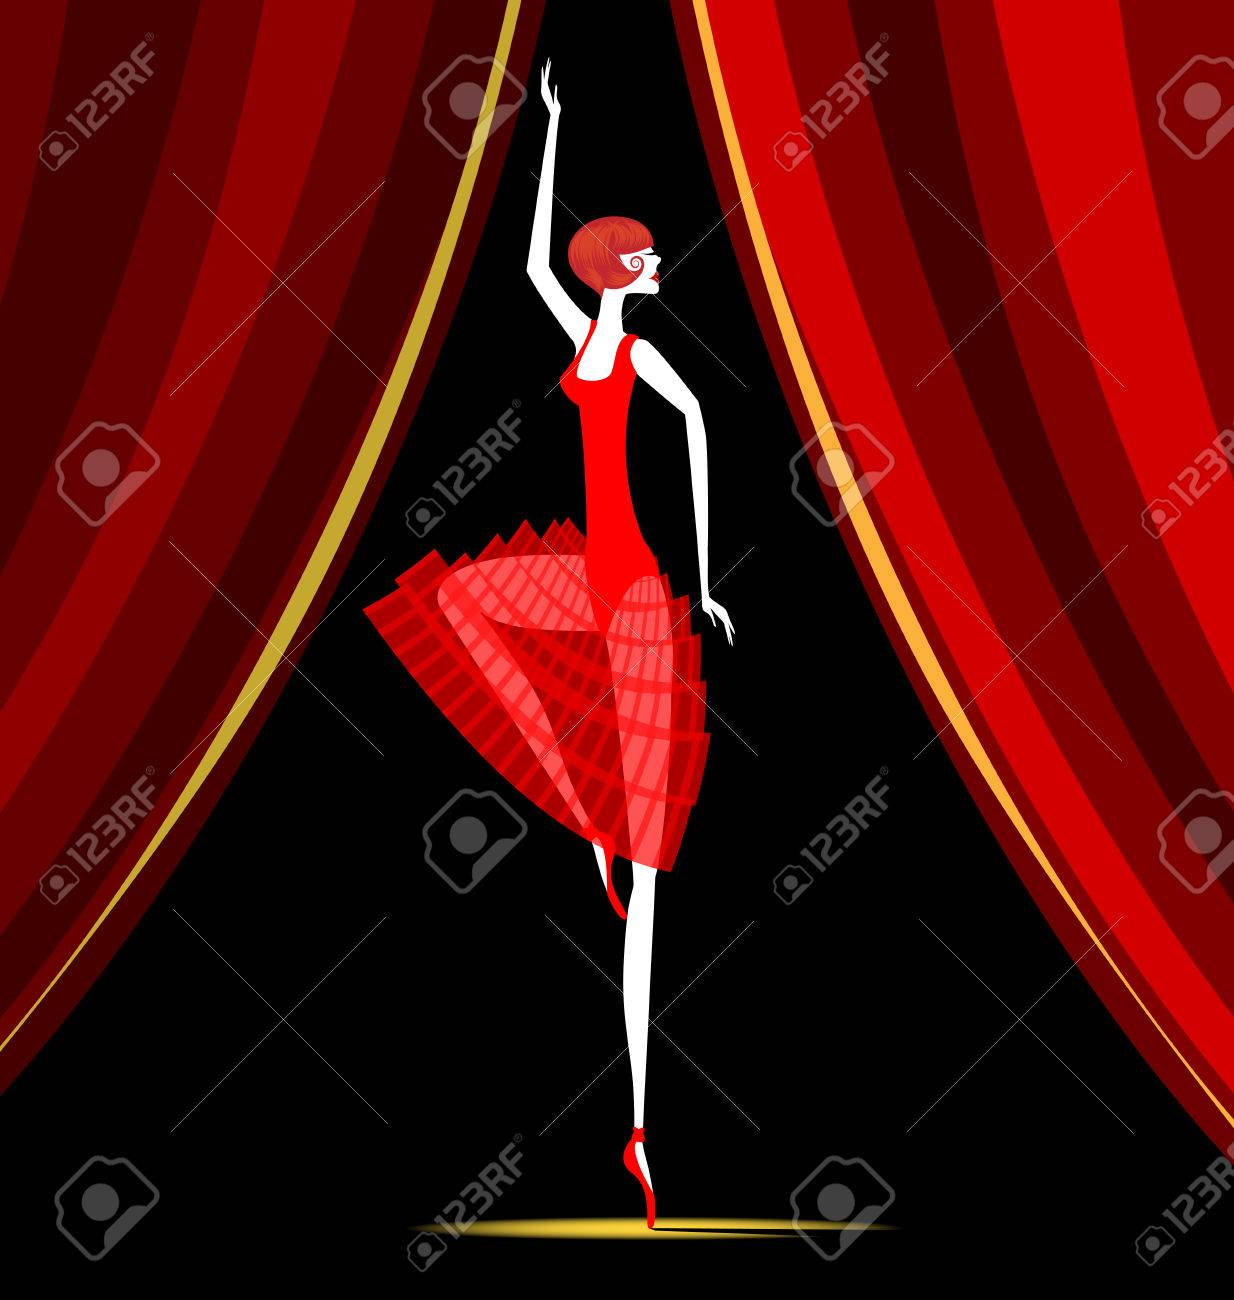 Red Curtain And Dancing Ballet Dancer Stock Vector